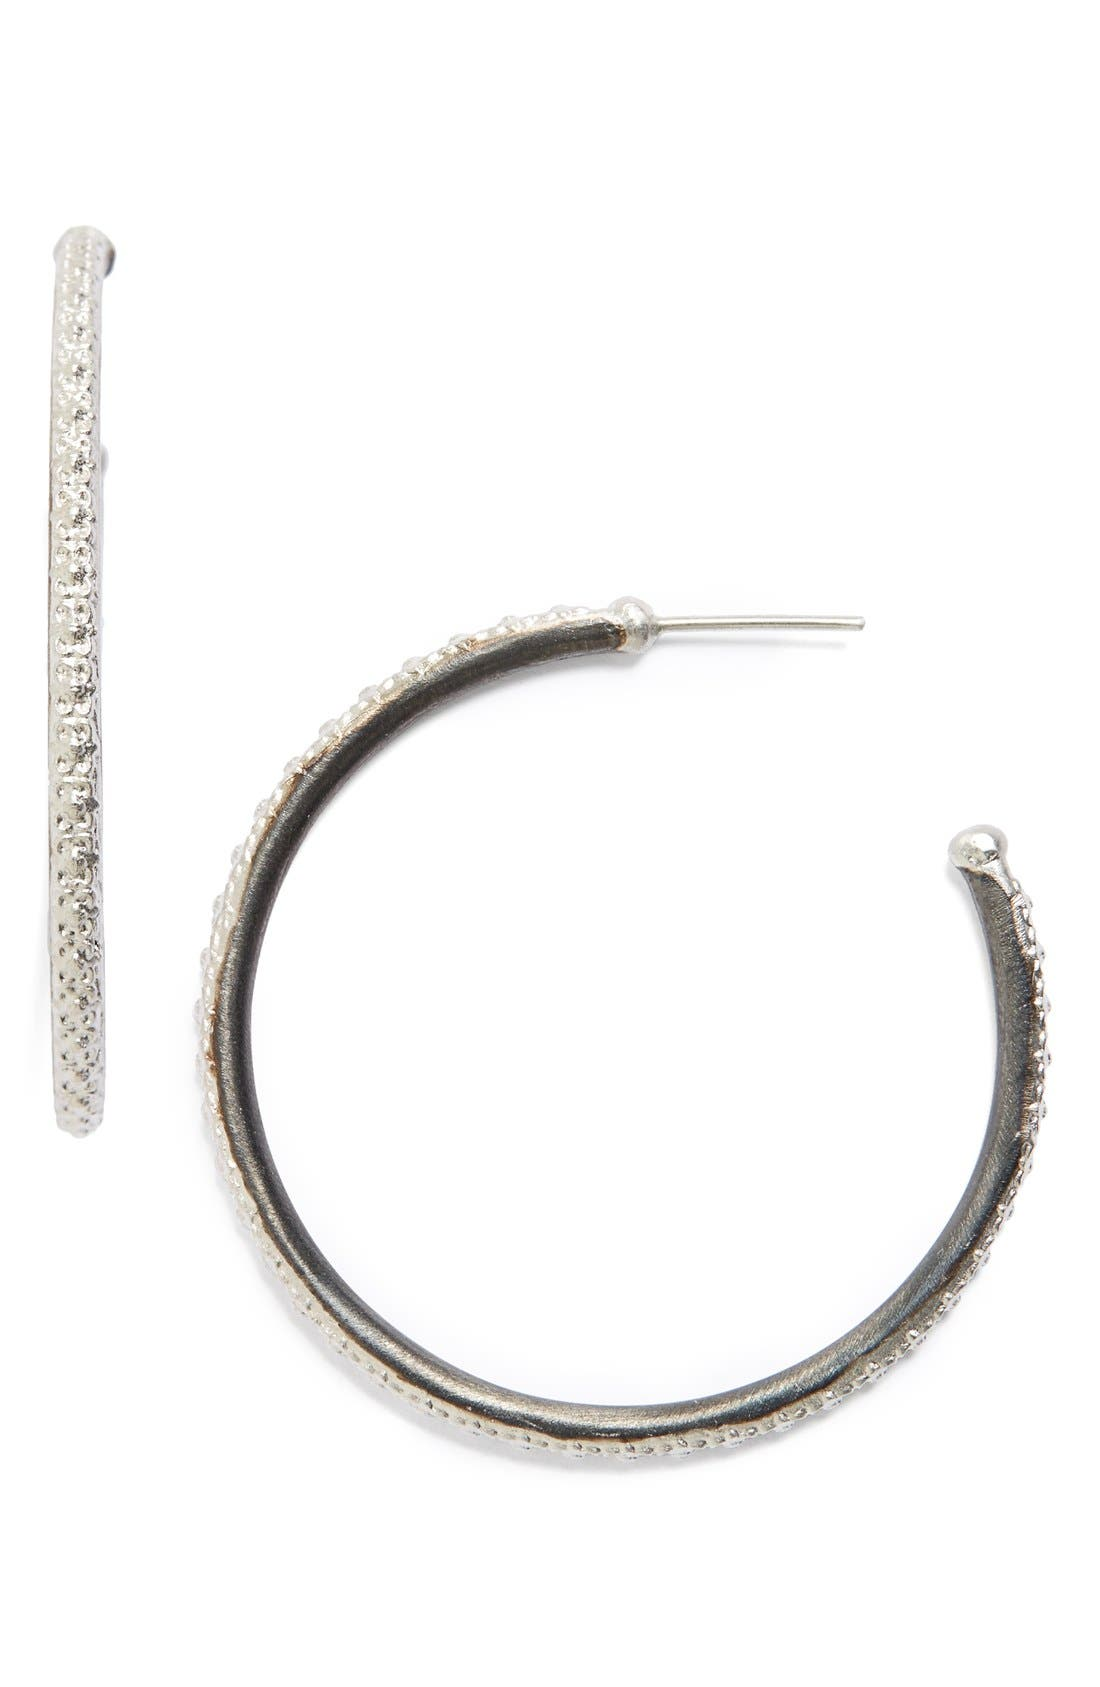 Old World Midnight Hoop Earrings,                             Main thumbnail 1, color,                             Silver